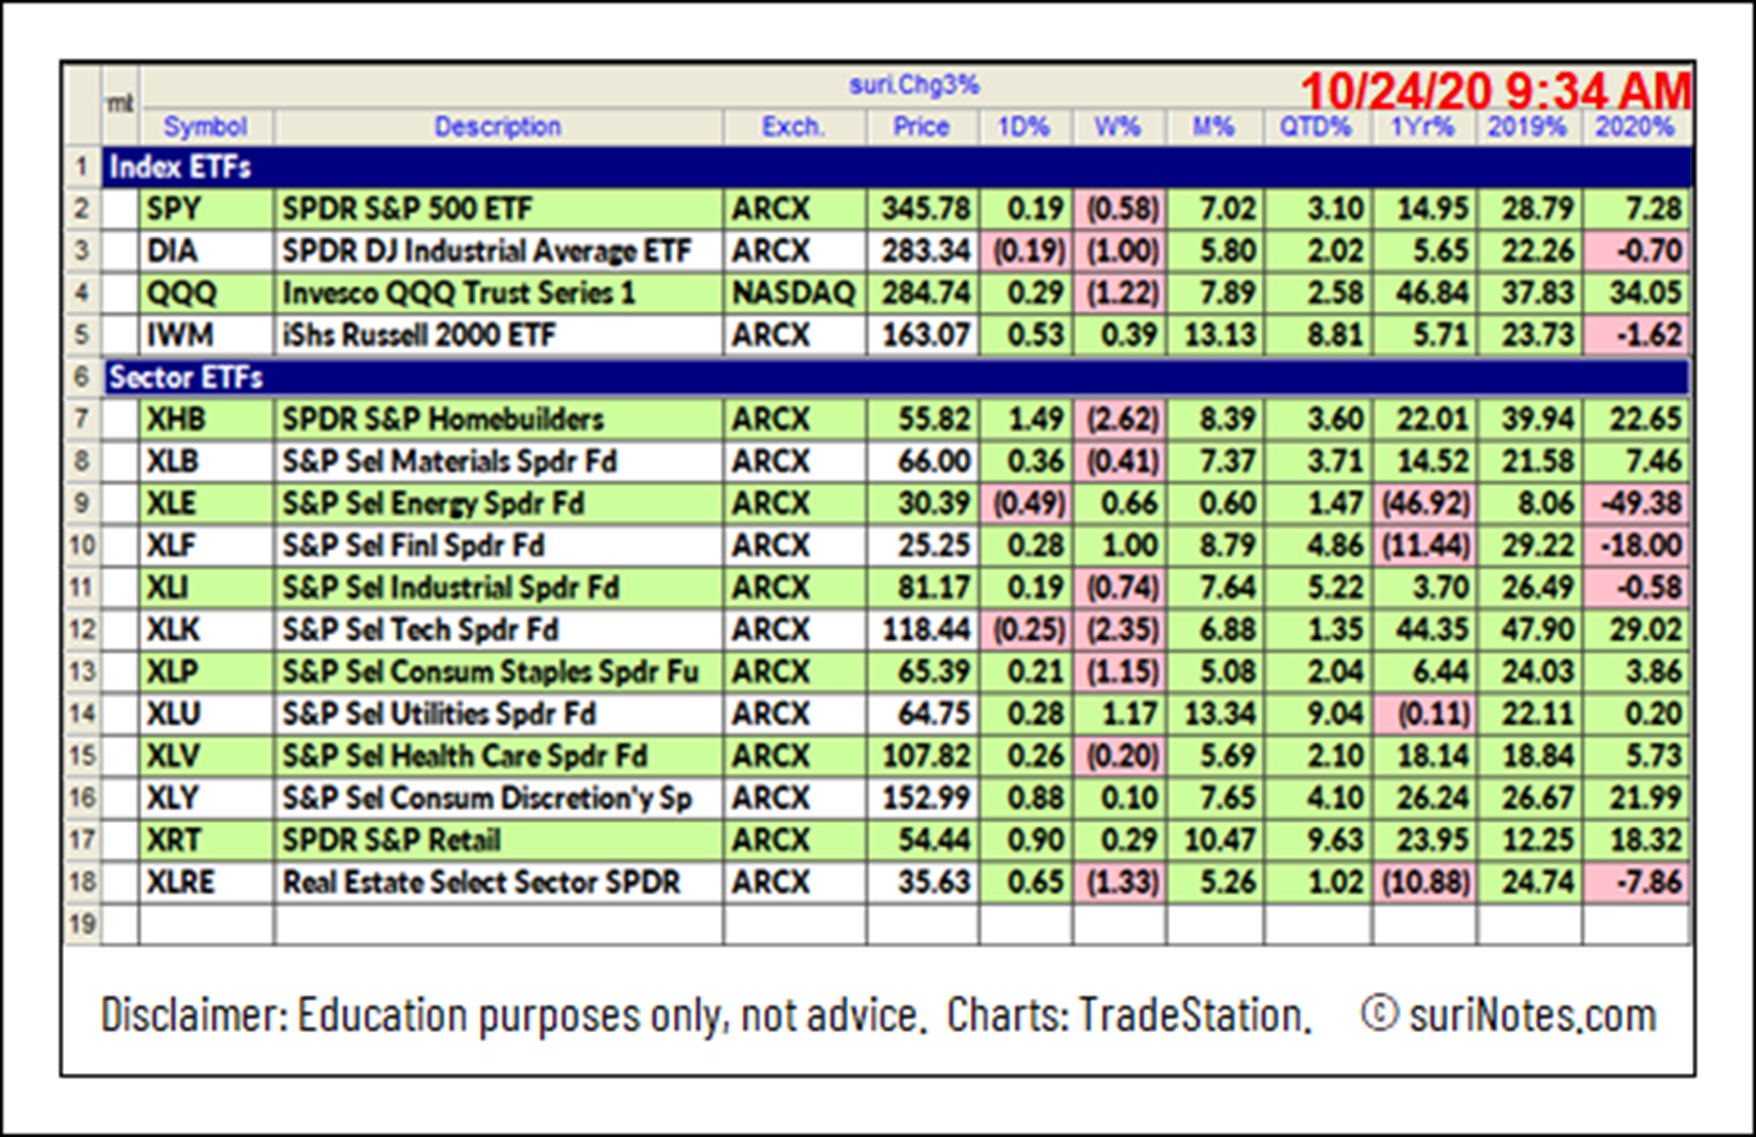 Index ETFs and Sector SPDR ETFs